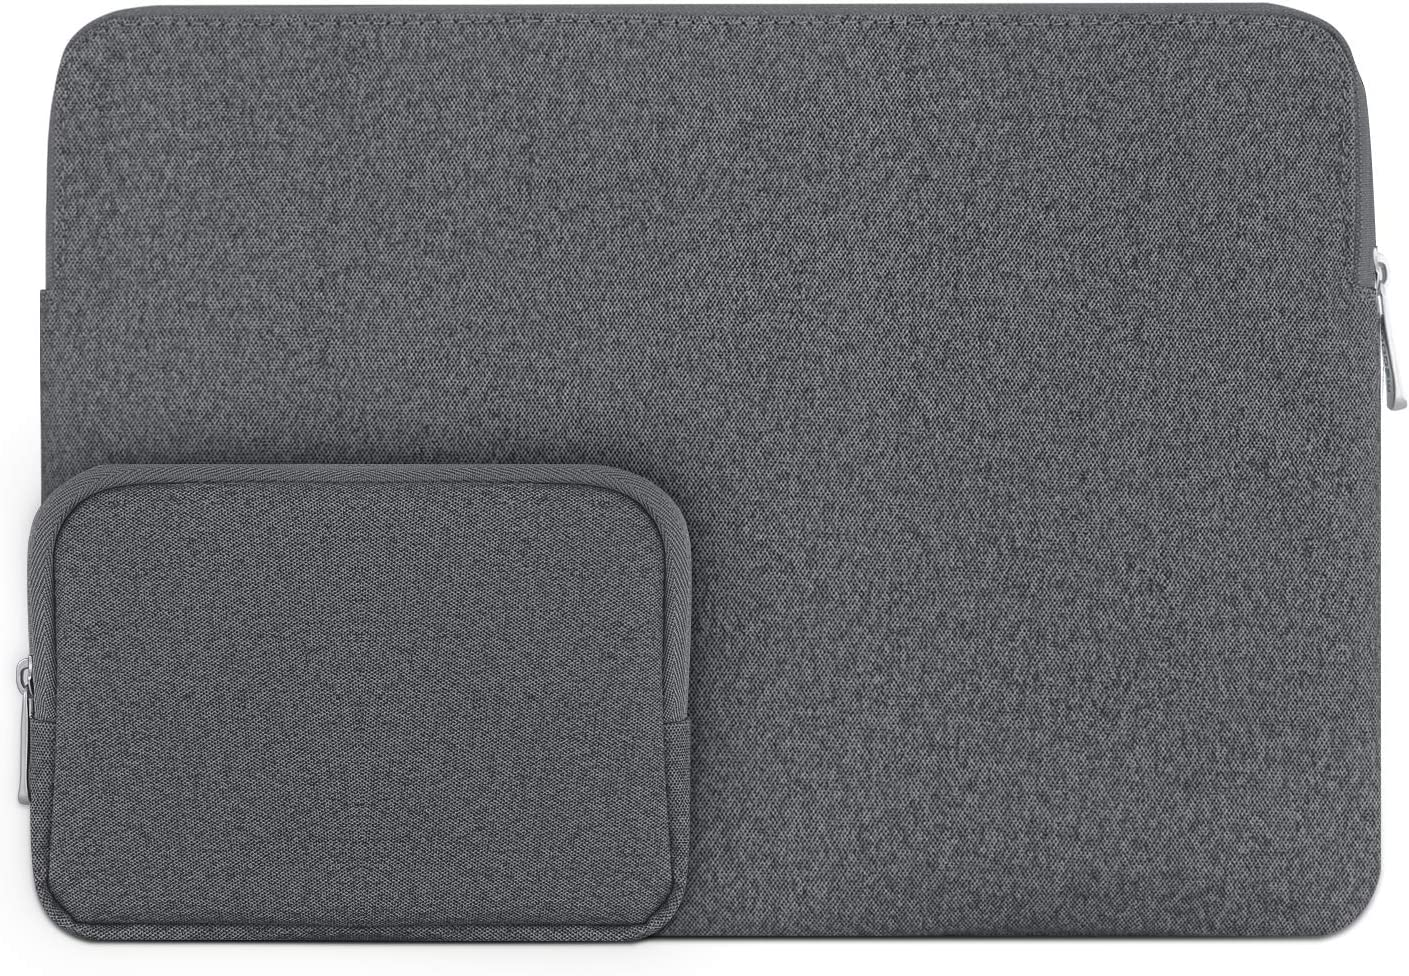 """Megoo 12Inch Slim Leather Sleeve Case Pouch Water Resistant for Surface Pro X/7/6/5/4/3 12.3"""" and Most 10-10.5-11-11.6-12 MacBook/iPad/Dell/Acer Chromebook Tablet Laptop (Dark Gray with Charger Case)"""